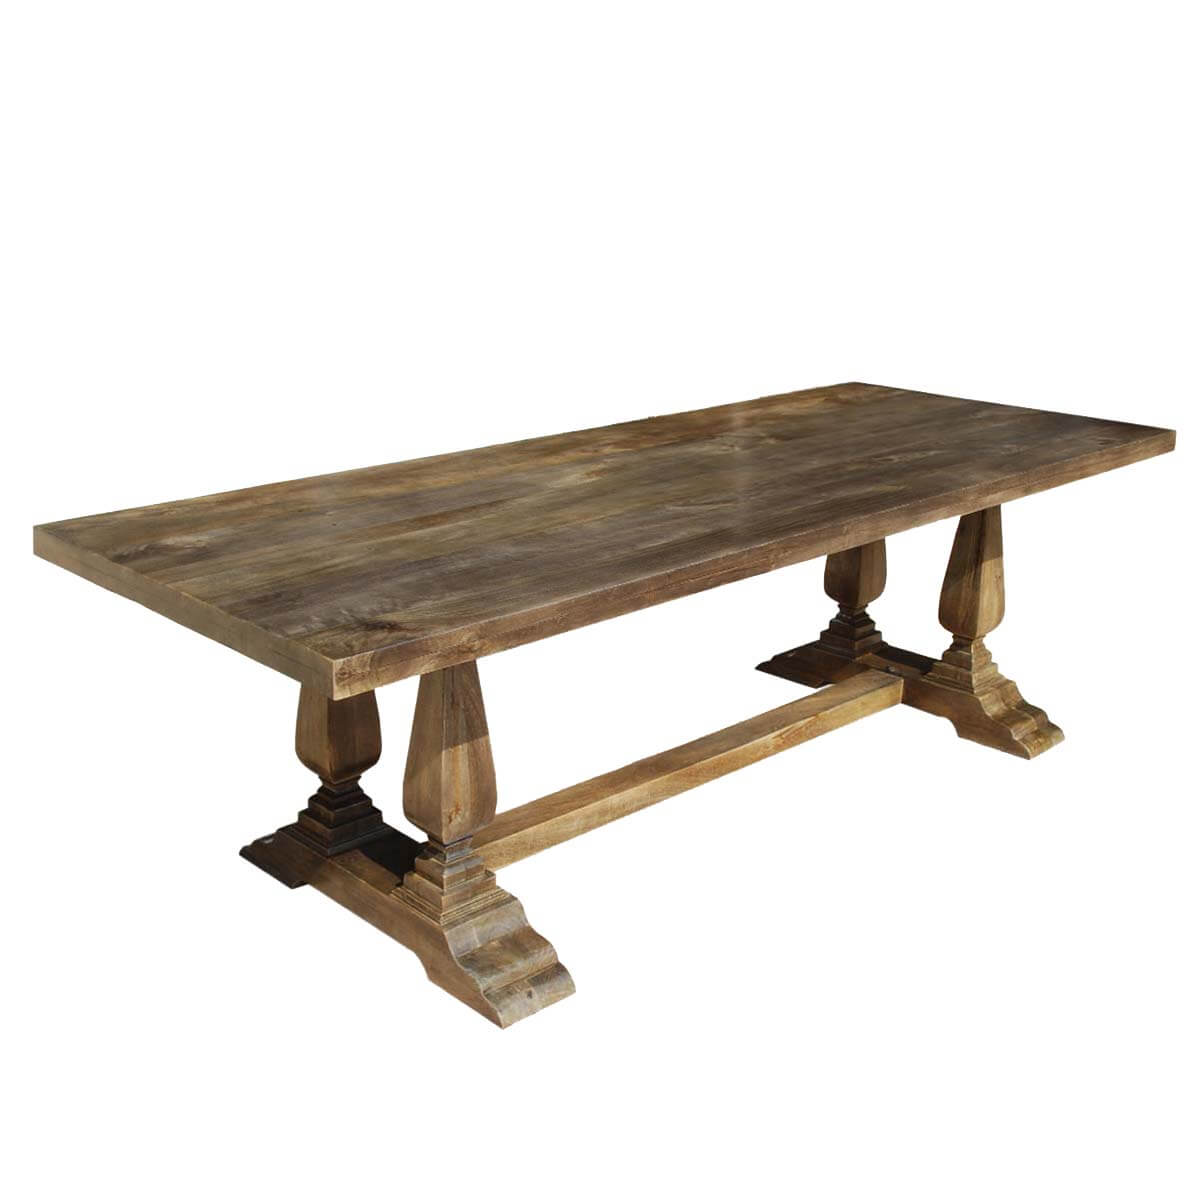 Pelham Rustic 98quot Solid Wood Trestle Pedestal Dining Table : 5141 from www.sierralivingconcepts.com size 1200 x 1200 jpeg 76kB